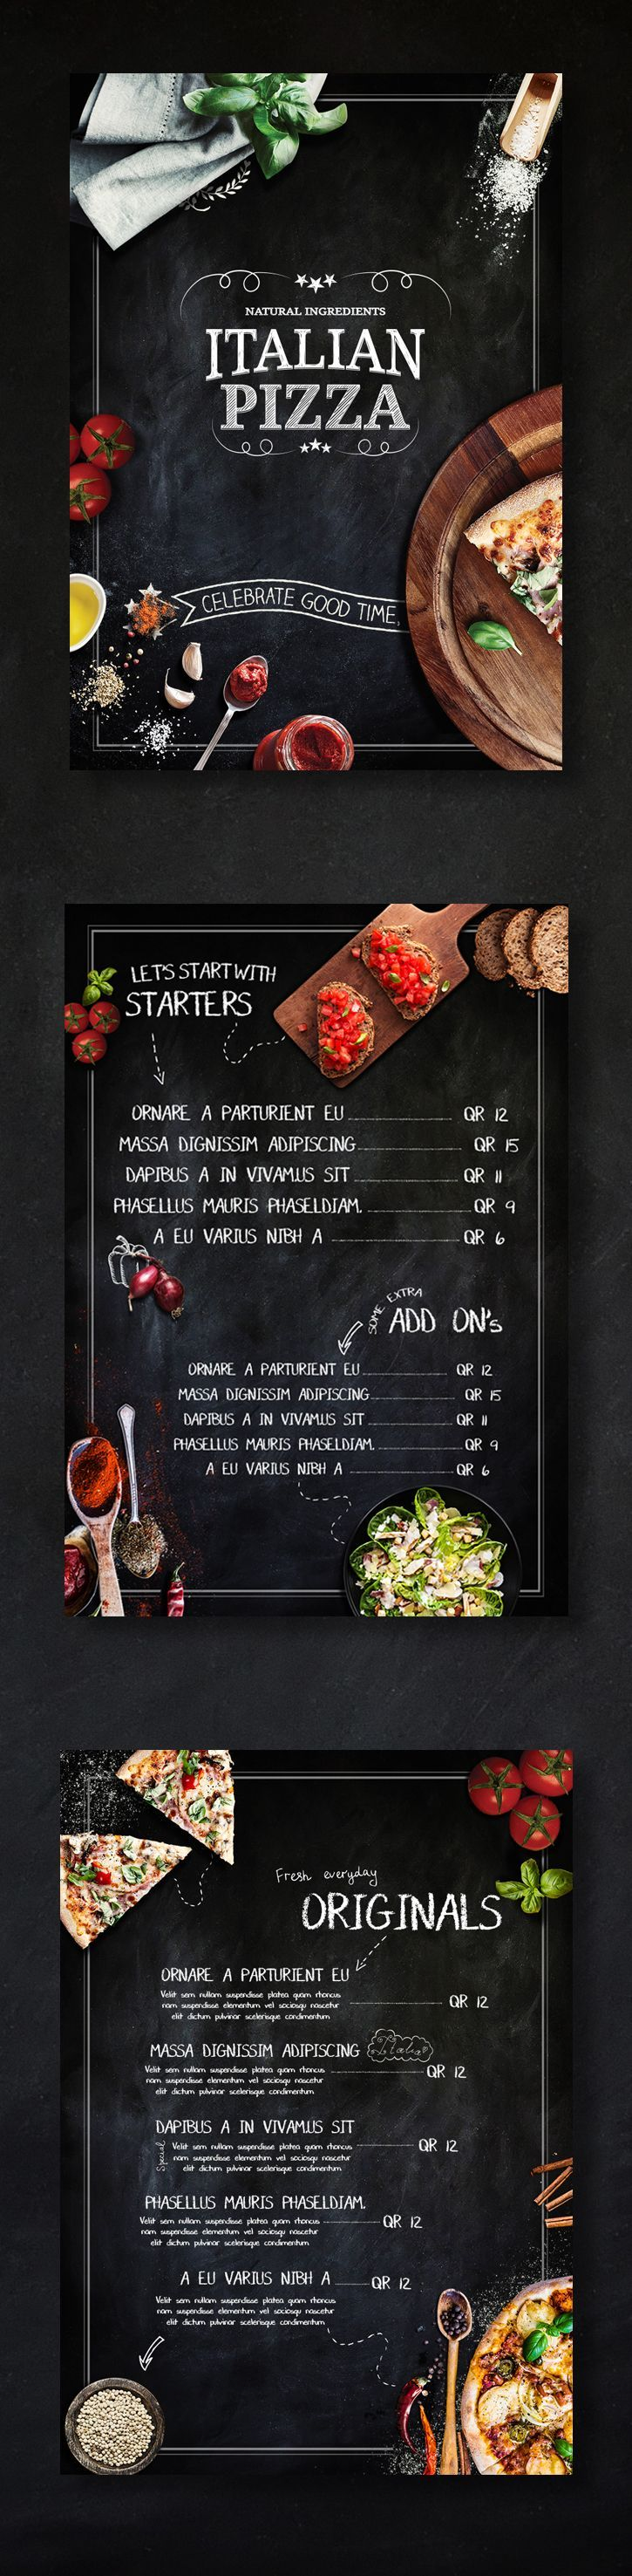 17 Best ideas about Food Menu Design on Pinterest | Menu design ...